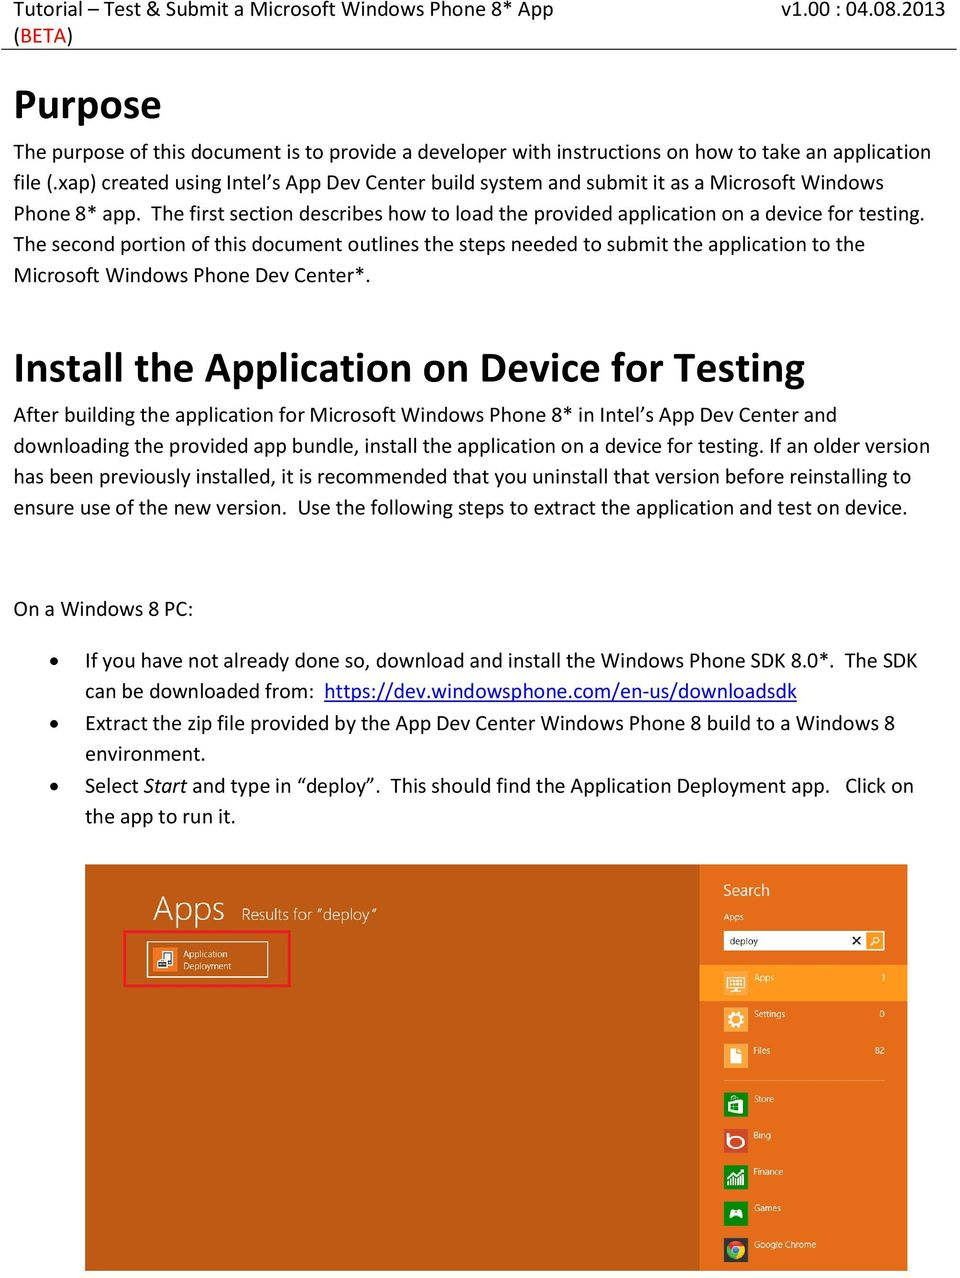 The second portion of this document outlines the steps needed to submit the application to the Microsoft Windows Phone Dev Center*.